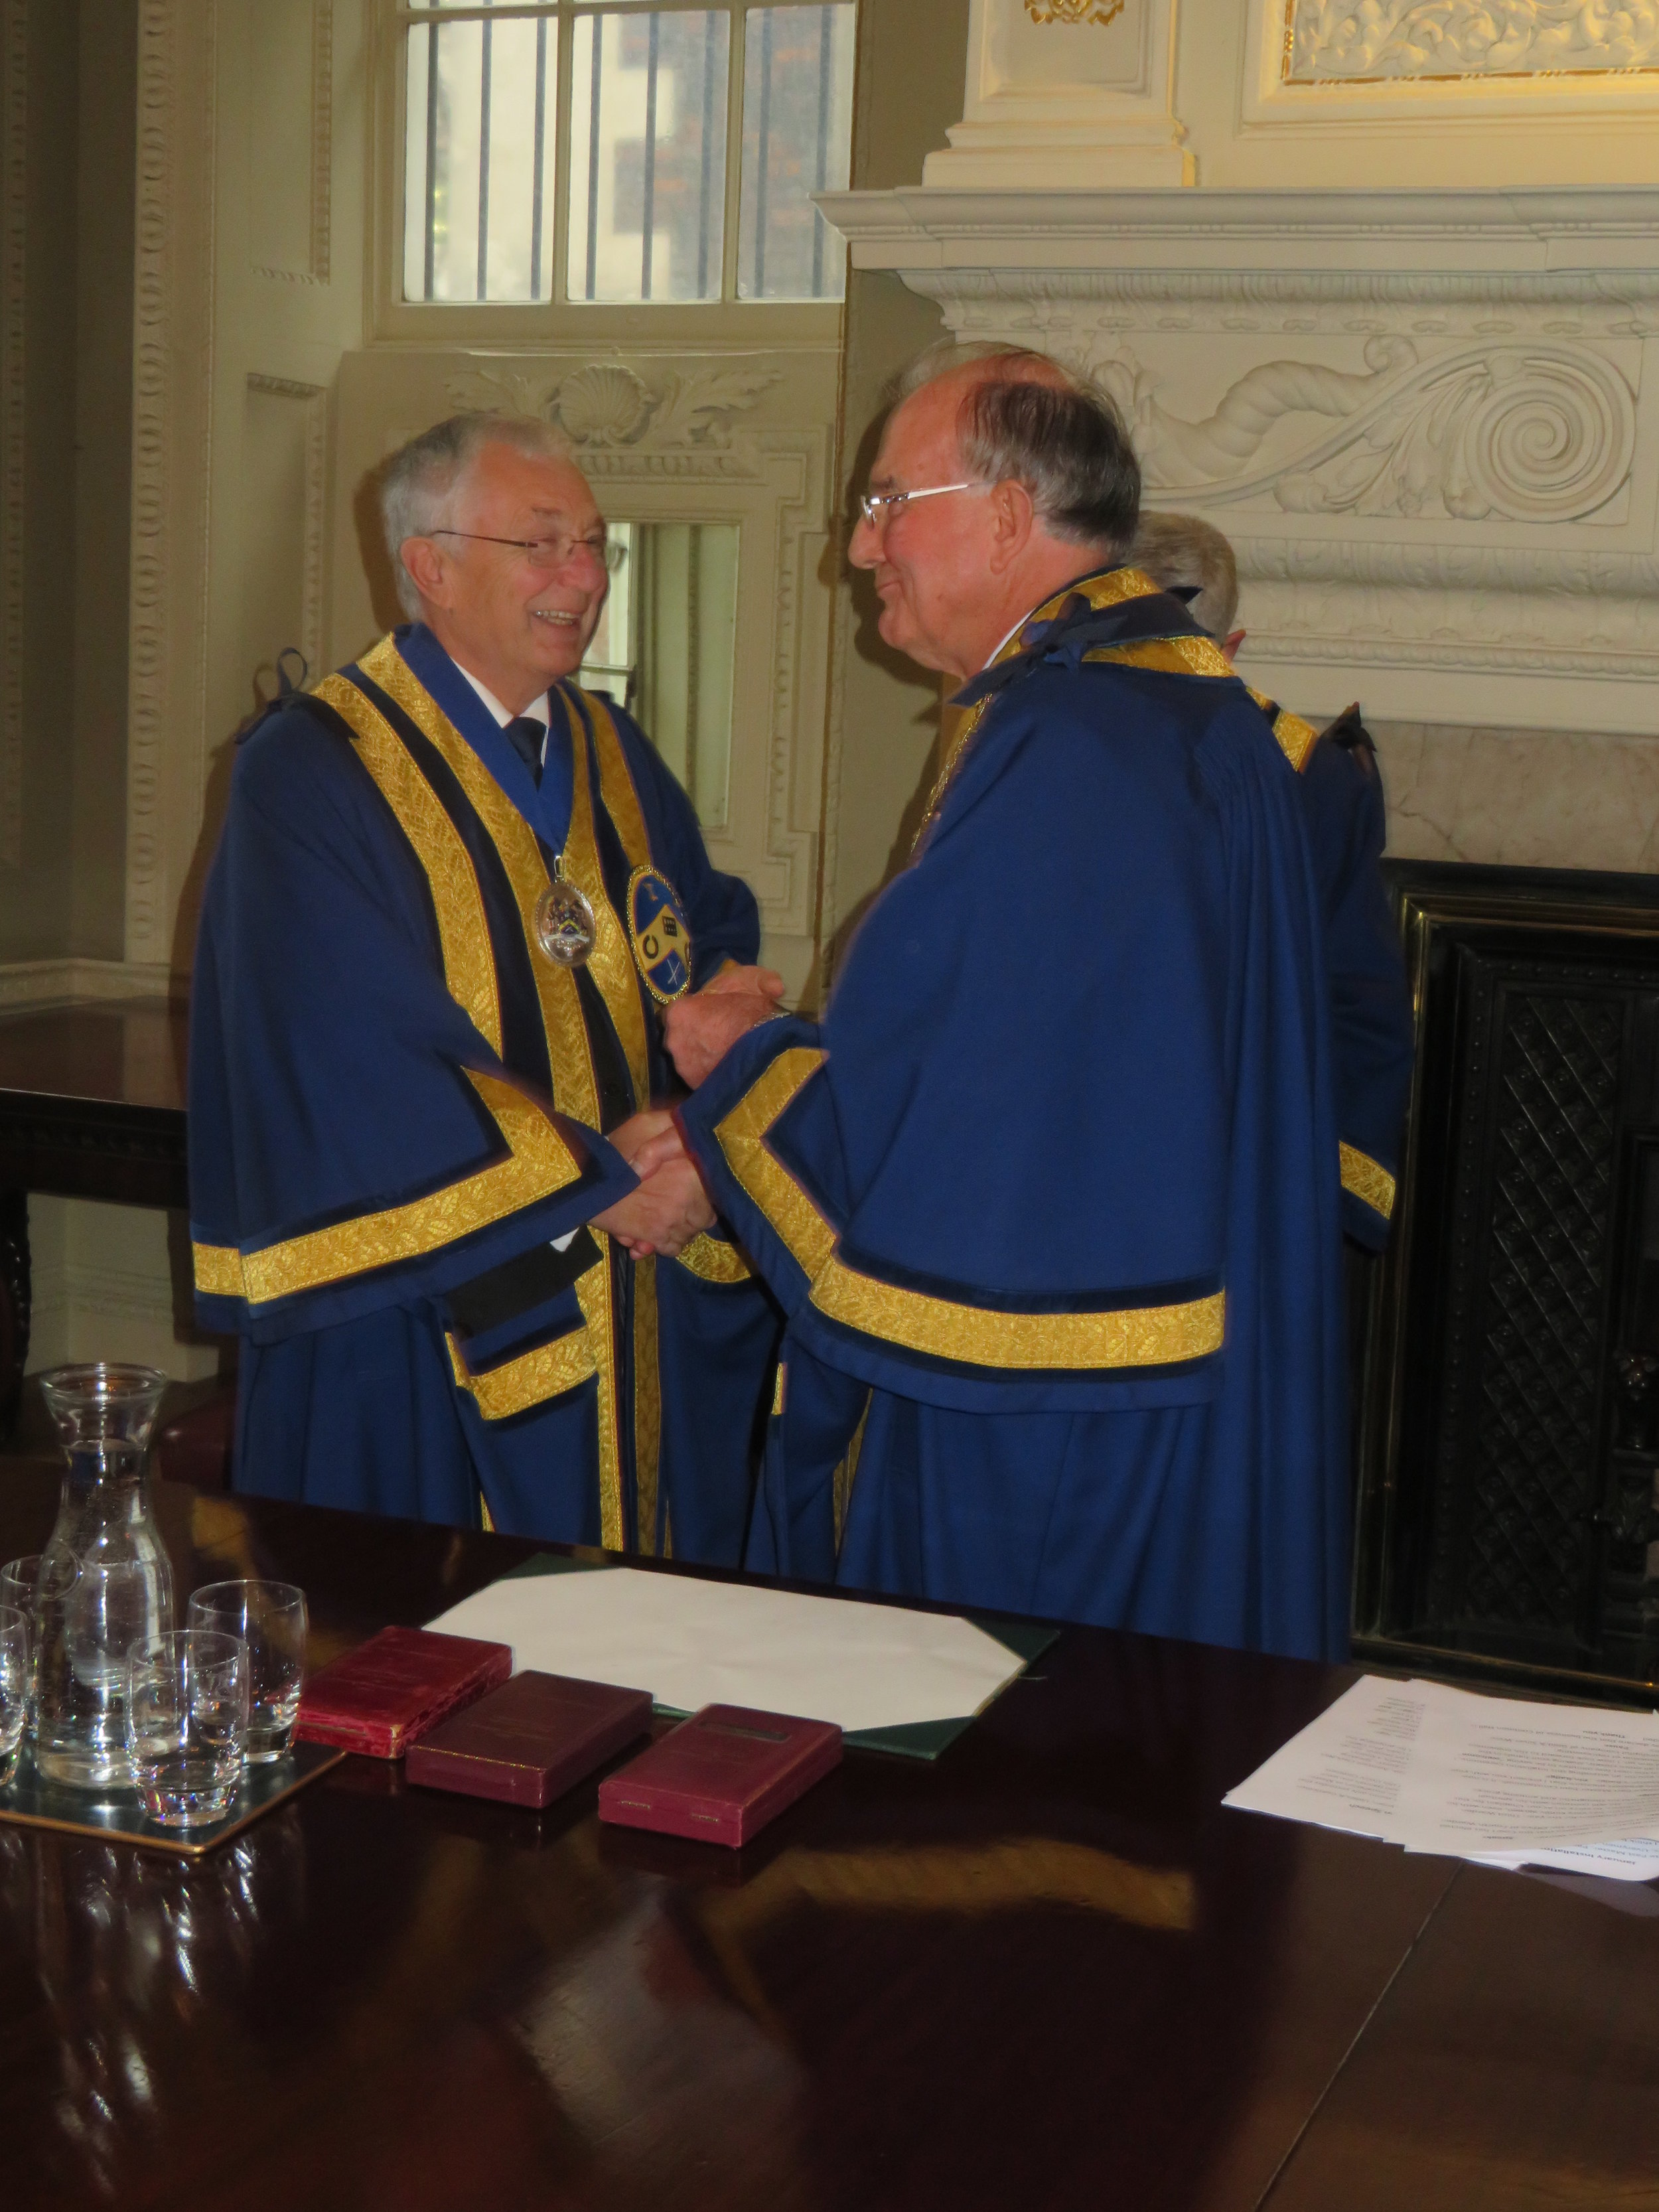 Honorary Chaplain Third Warden The Reverend G L Warren